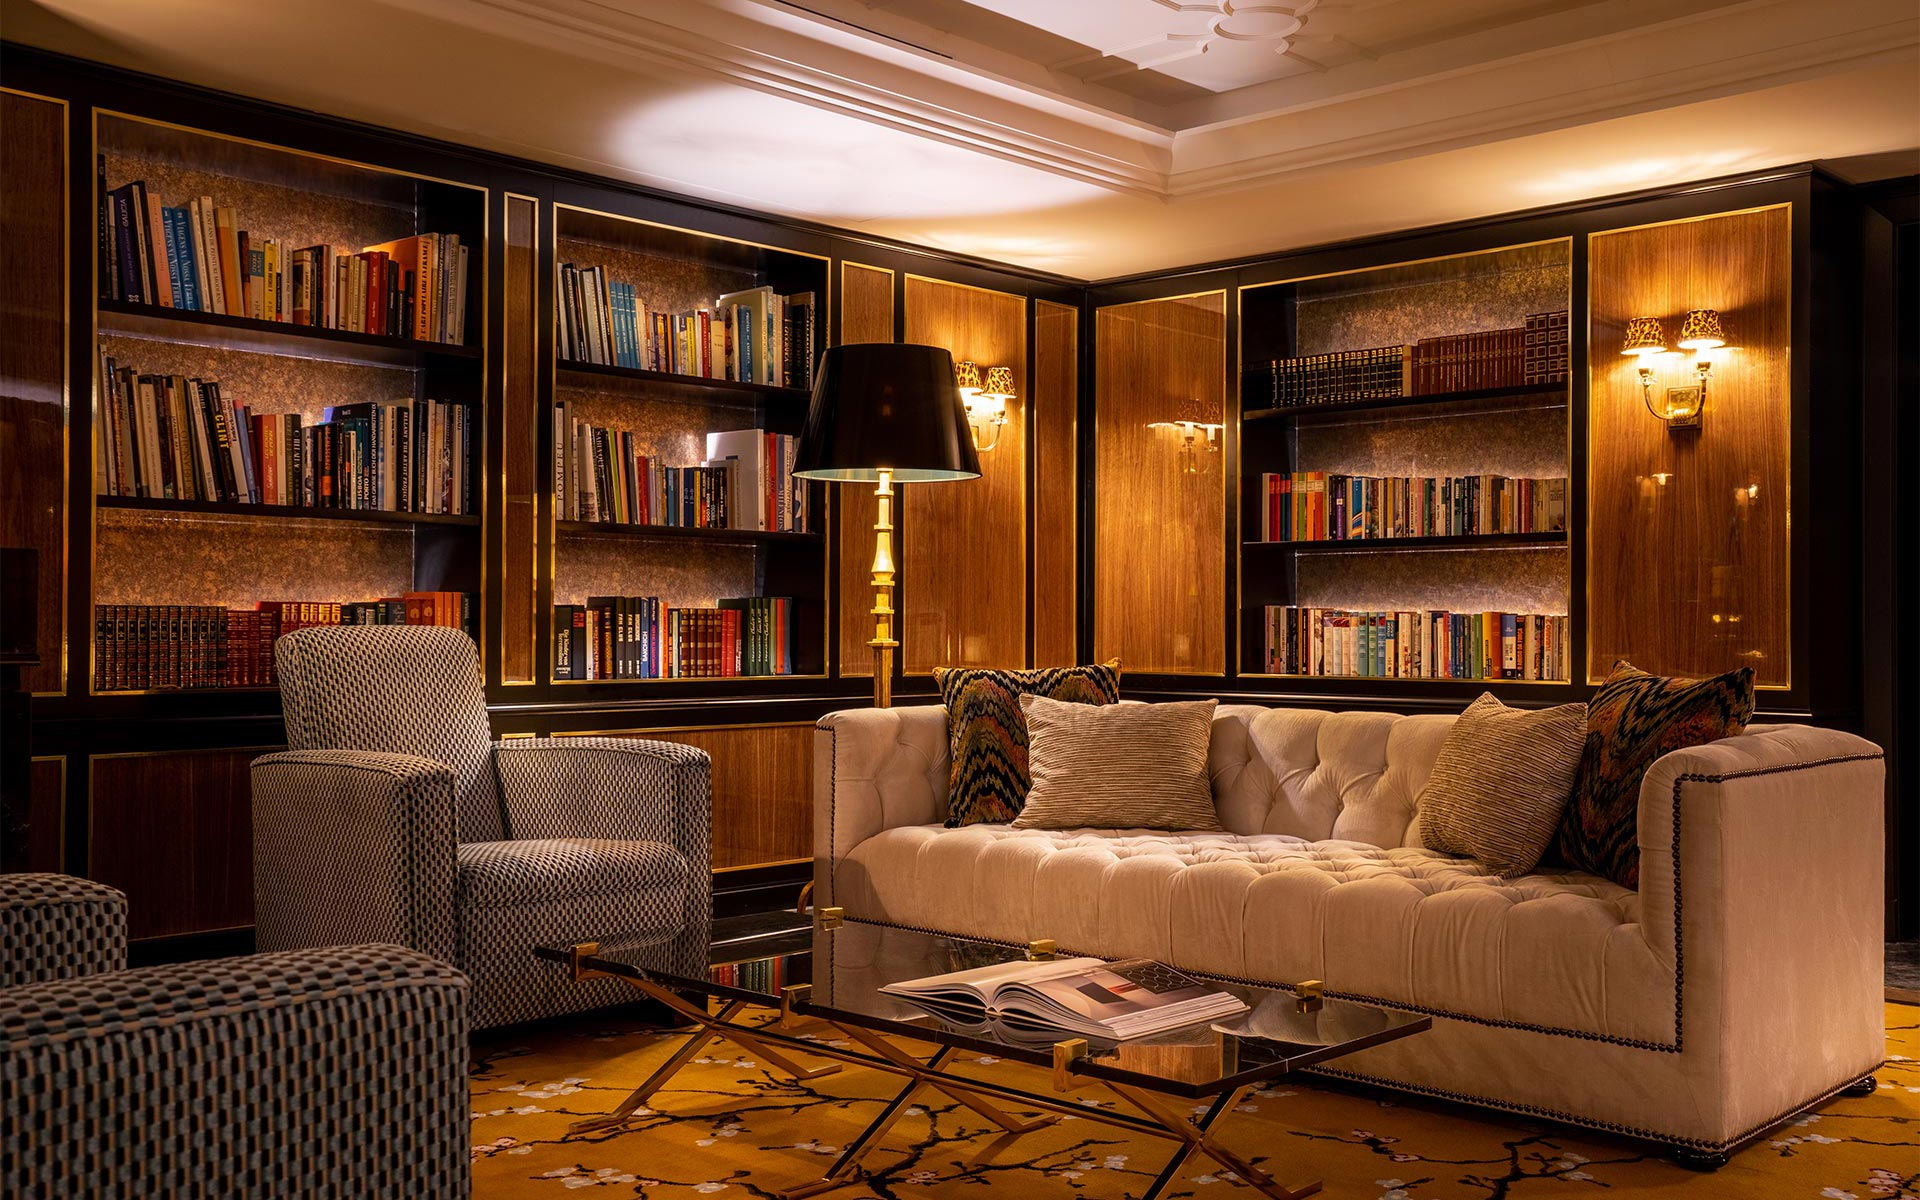 Maison Albar Hotels Le Monumental Palace library